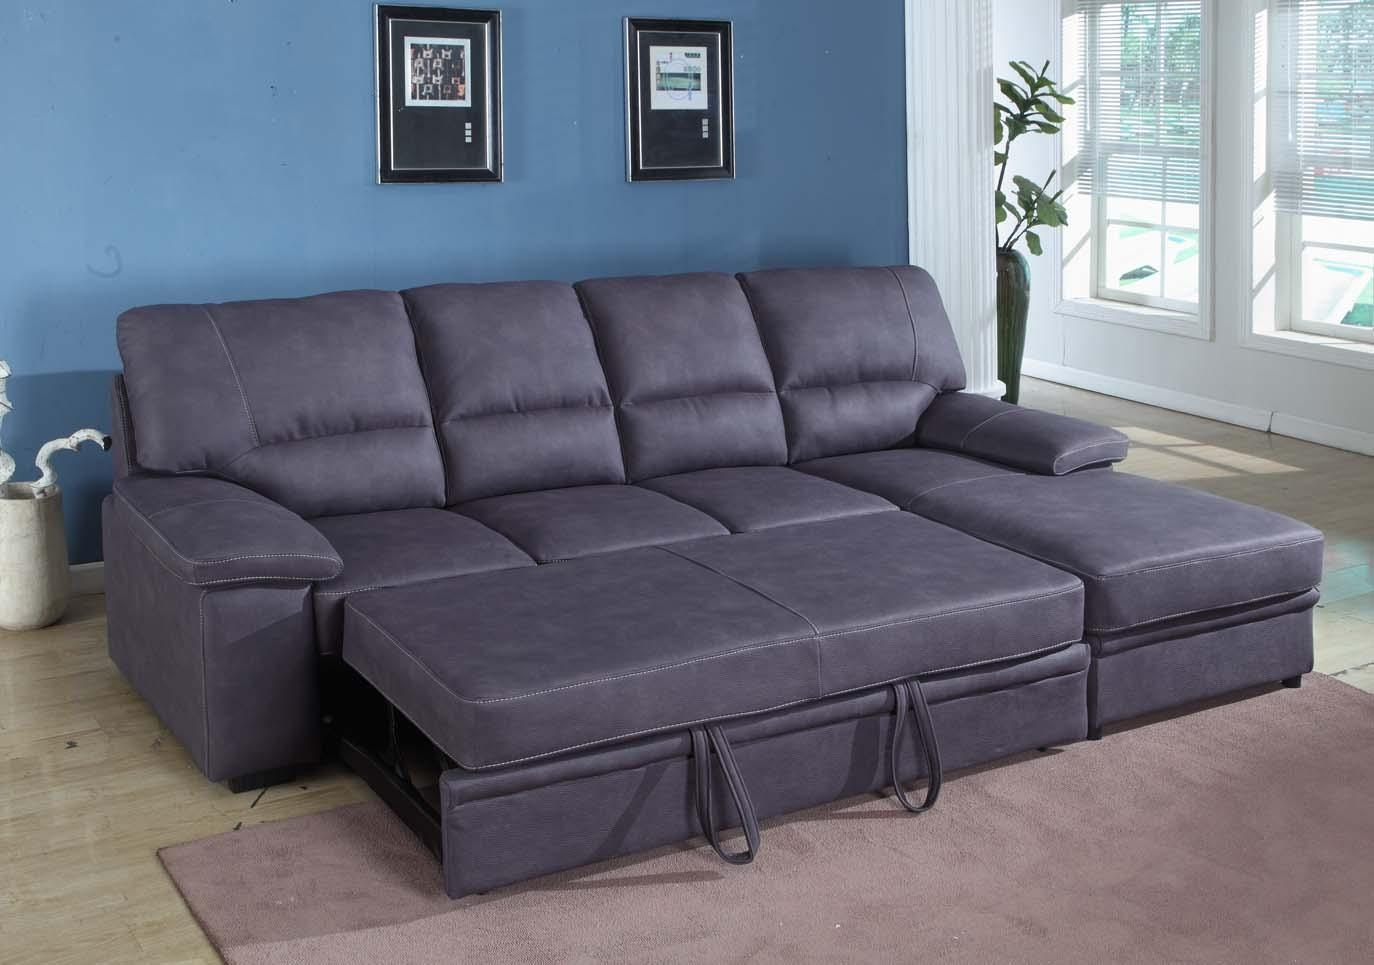 Gray Sectional Sofa | Home Designjohn With King Size Sleeper Sofa Sectional (View 15 of 20)